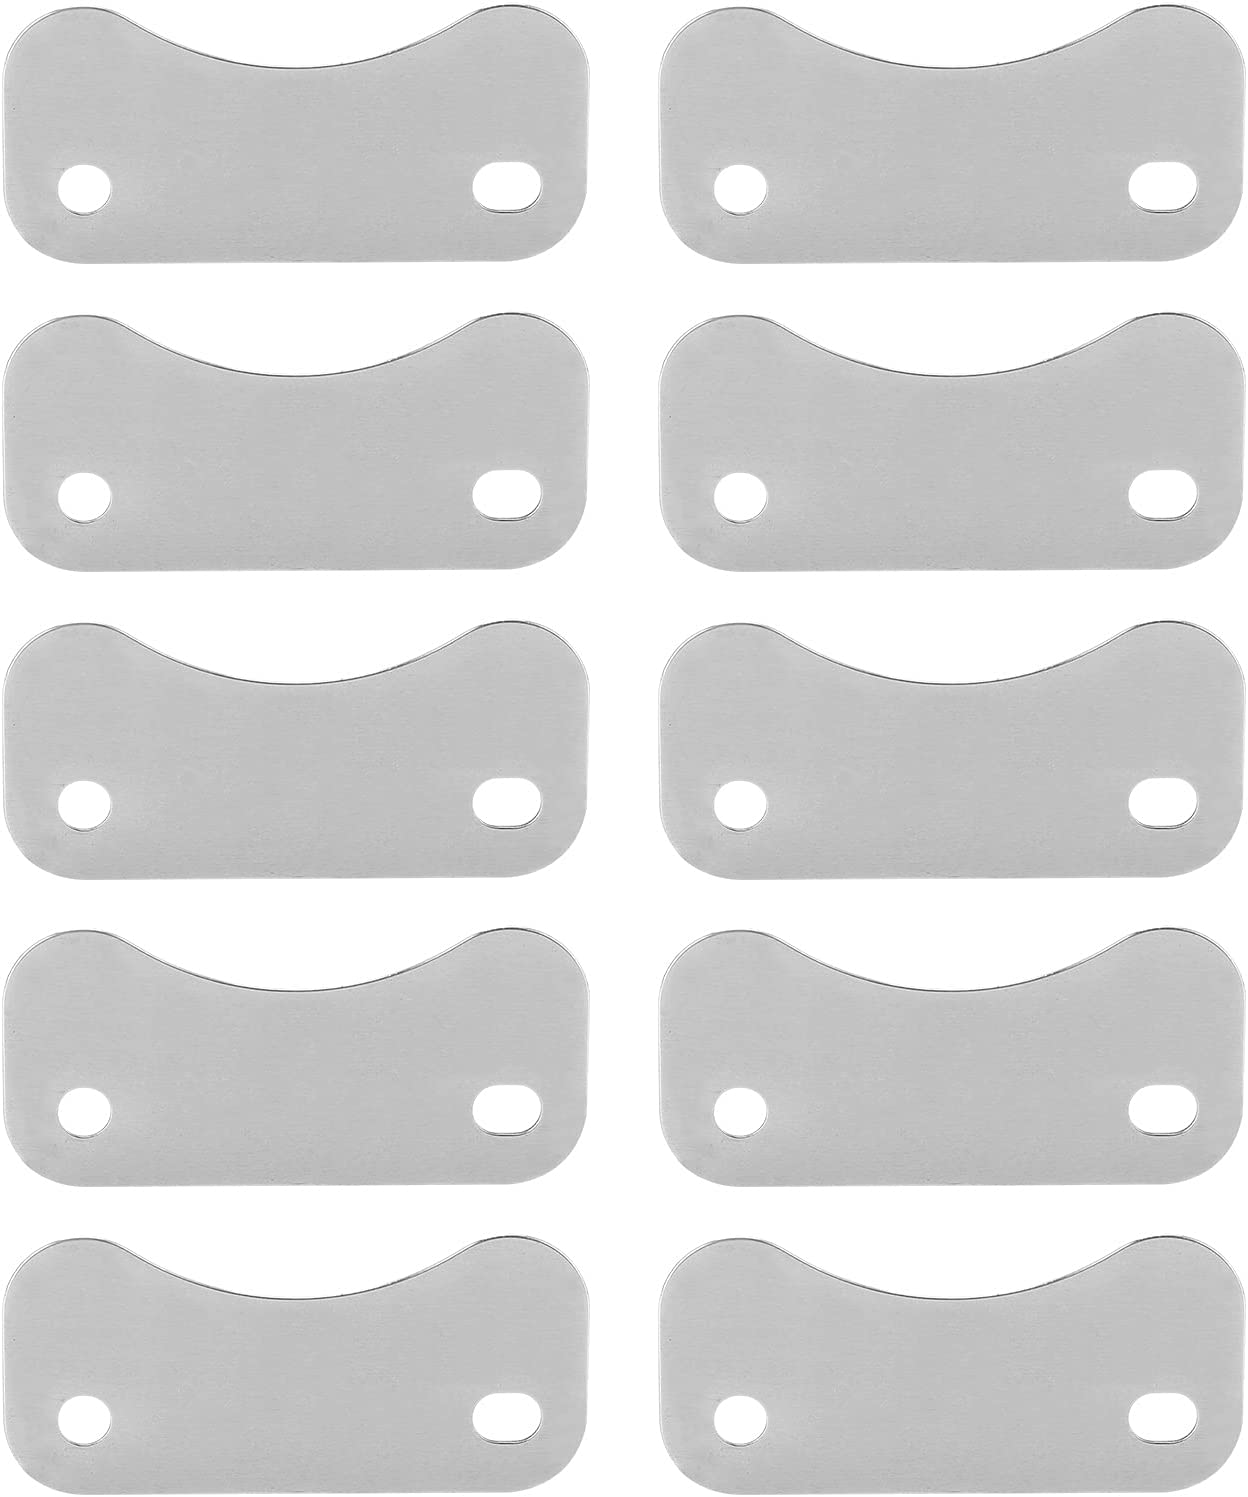 Jacksonville Mall Valve Plate 10Pcs Cast Iron Gifts Air Pump 1 0.97 Material